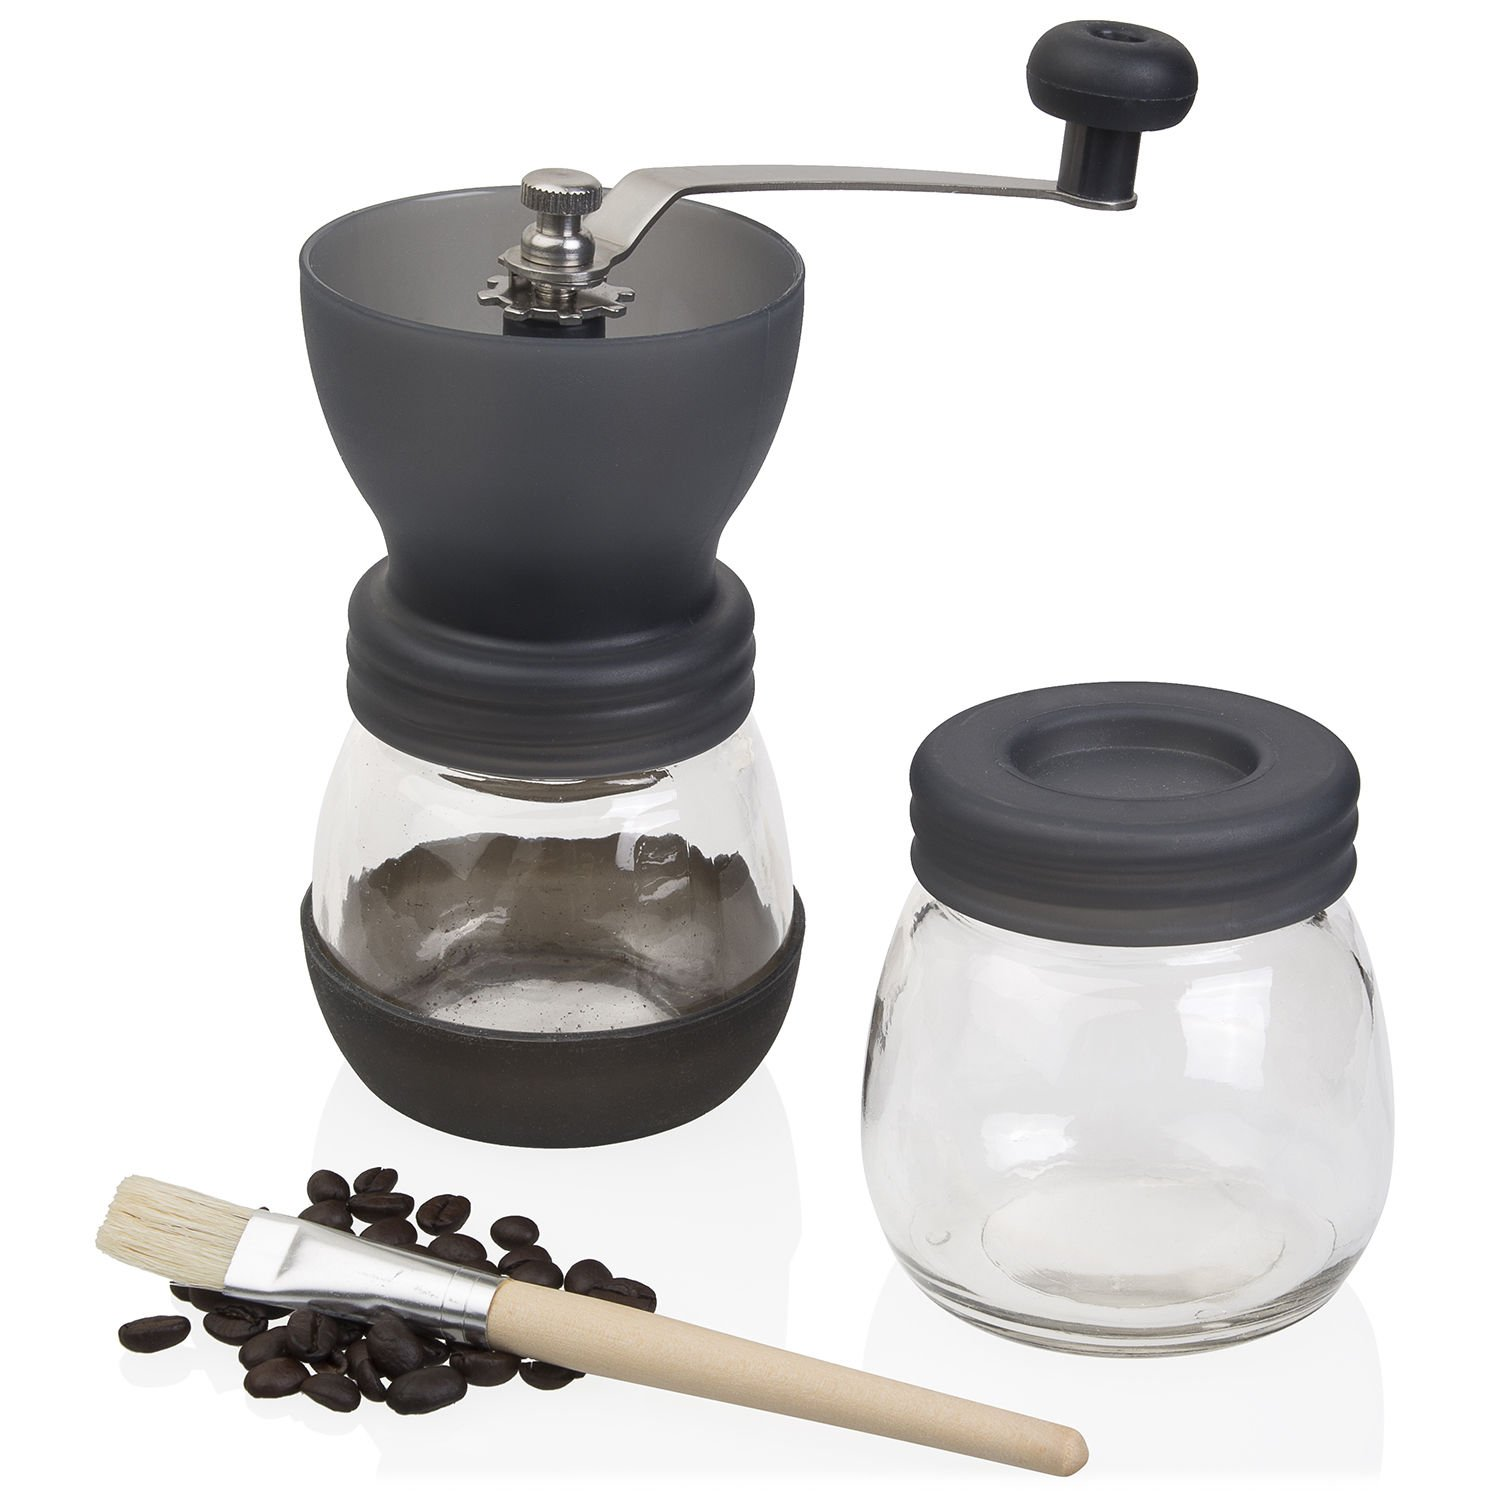 Jumbl Ceramic Coffee Mill, Hand Crank Manual Burr Coffee Grinder - Adjustable To by Power Burr Coffee Grinders